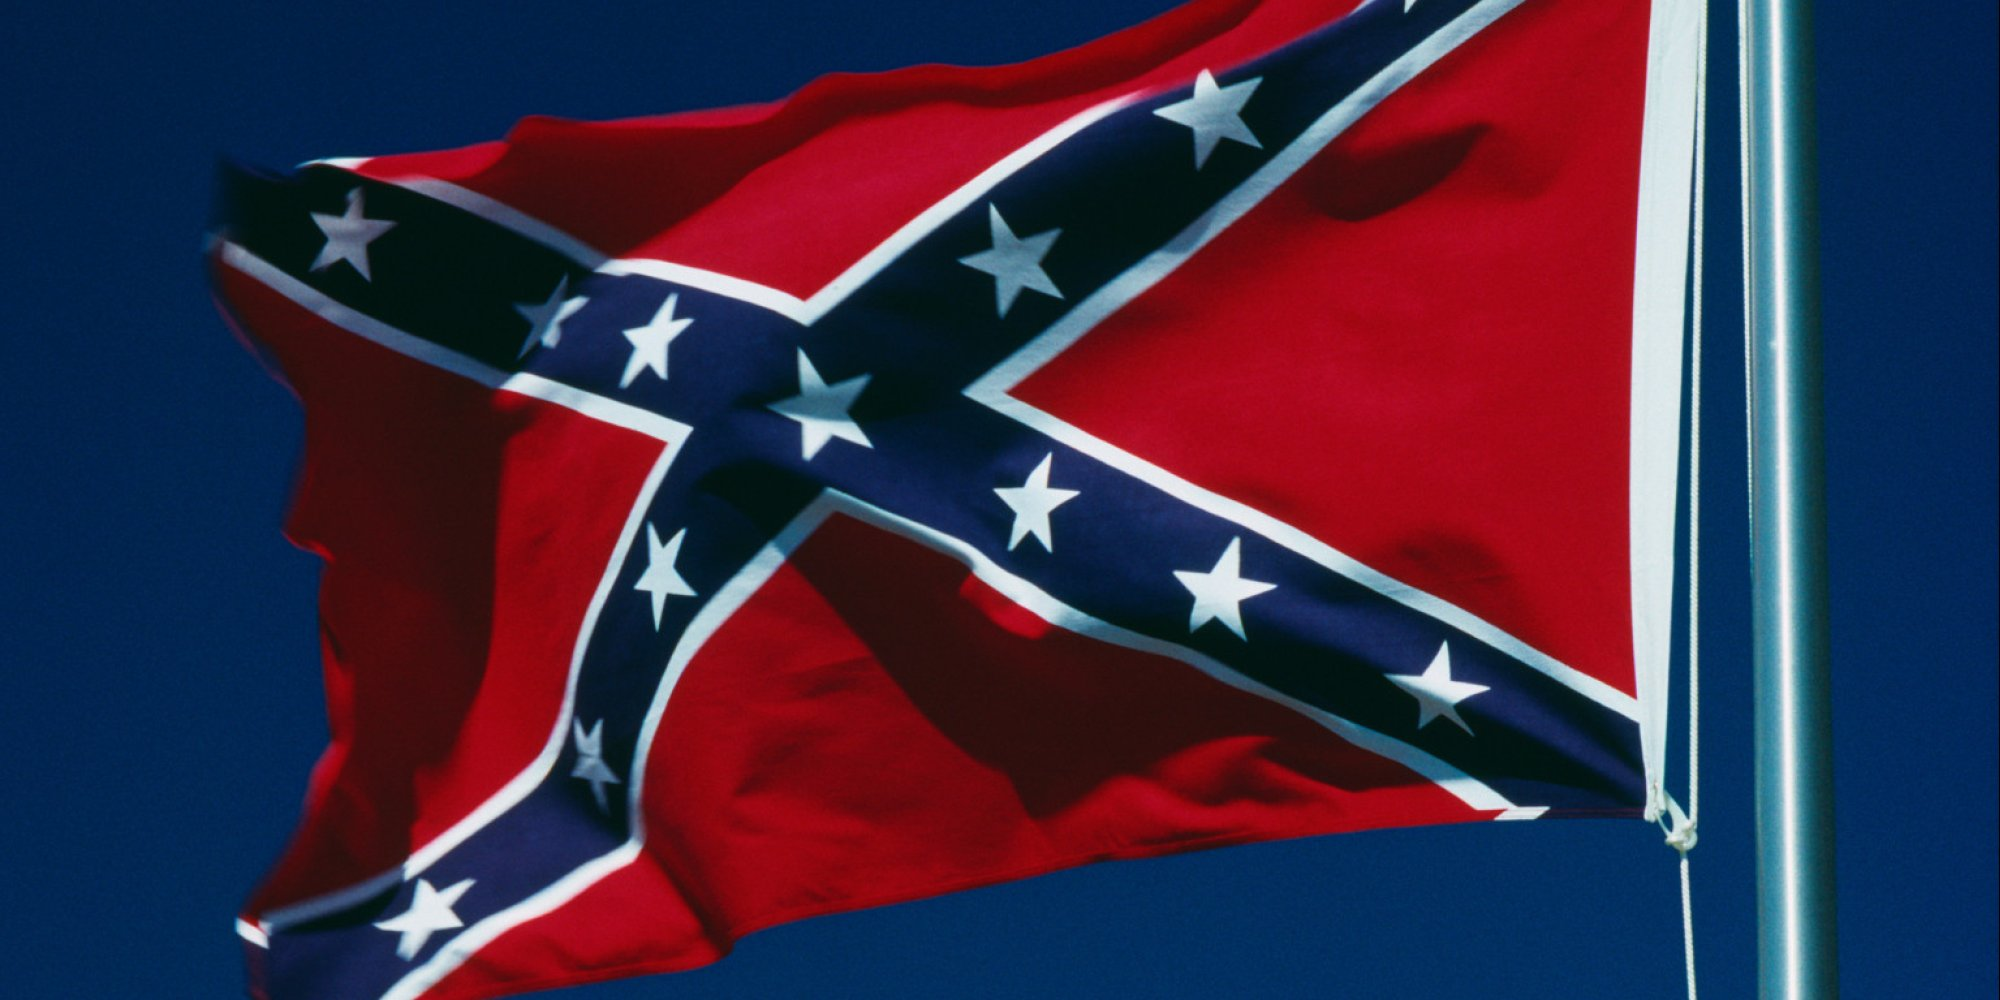 No You Need a History Lesson The Confederate Flag Is a Symbol of